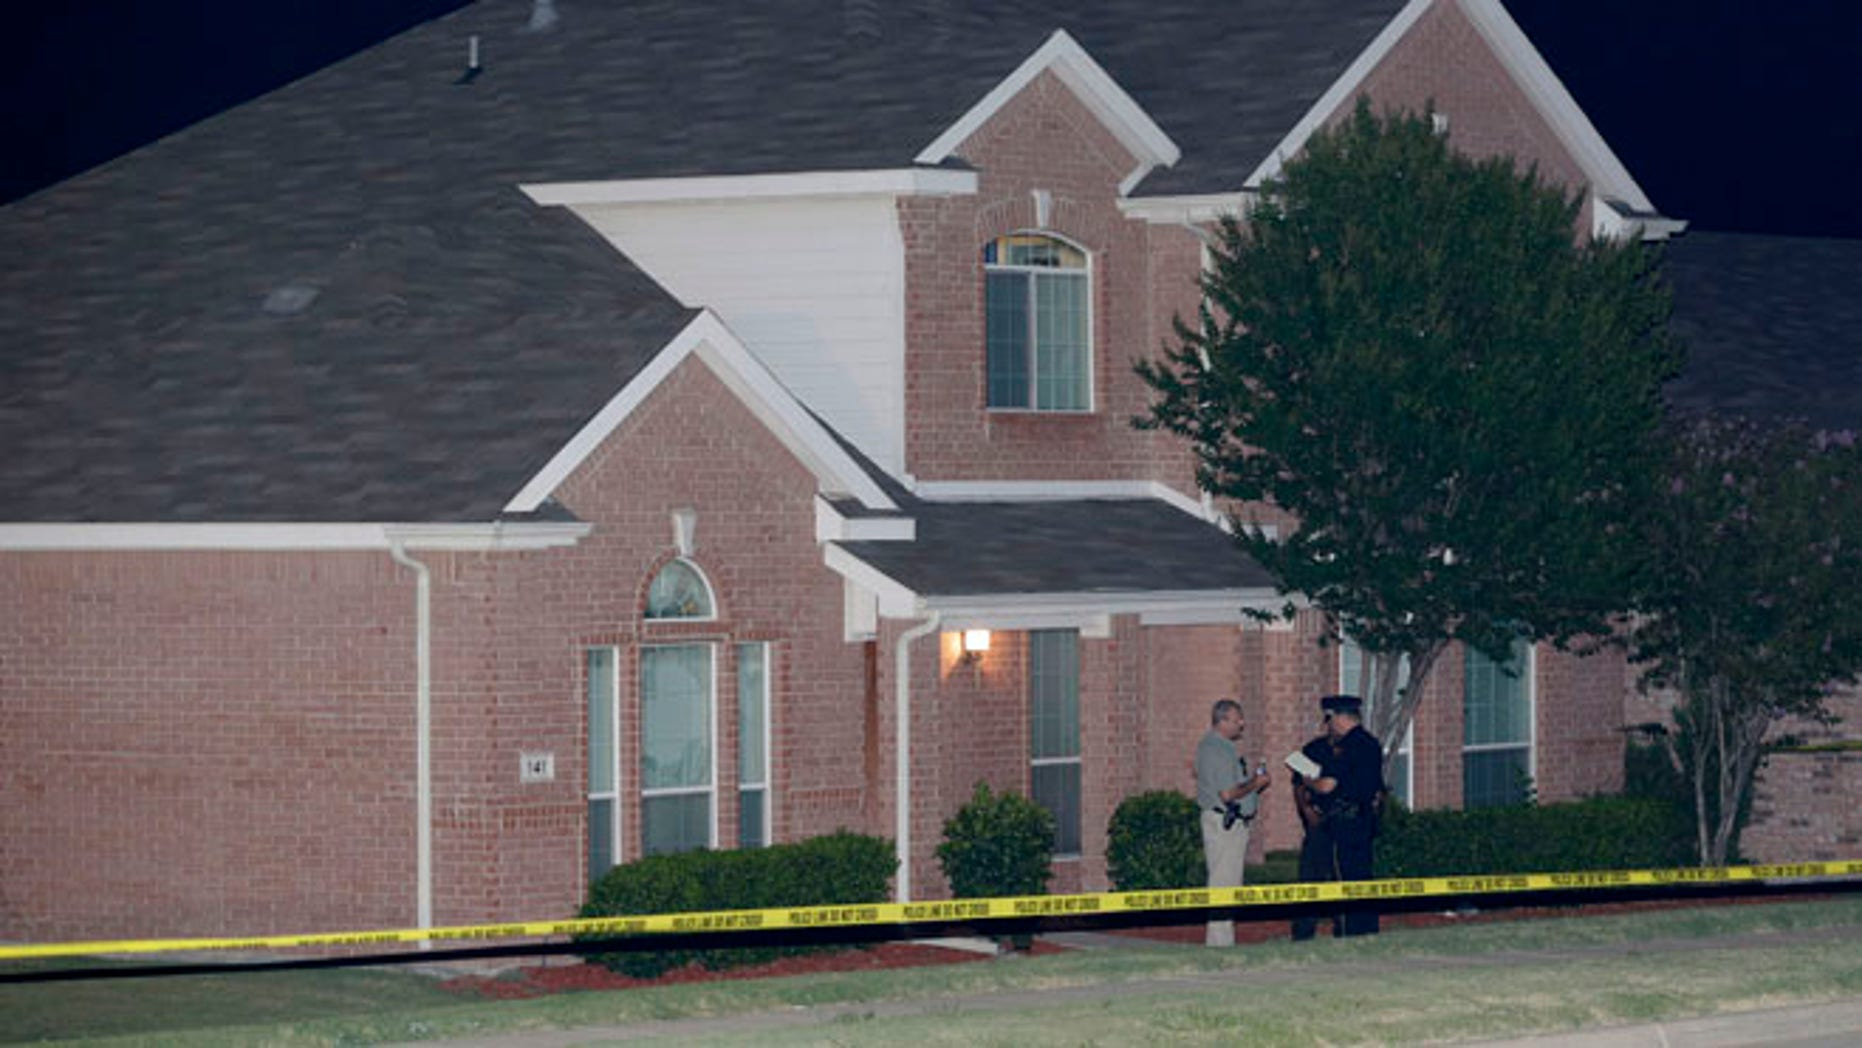 Aug. 8: Law enforcement officers confer outside the house of a fatal shooting in DeSoto, Texas.